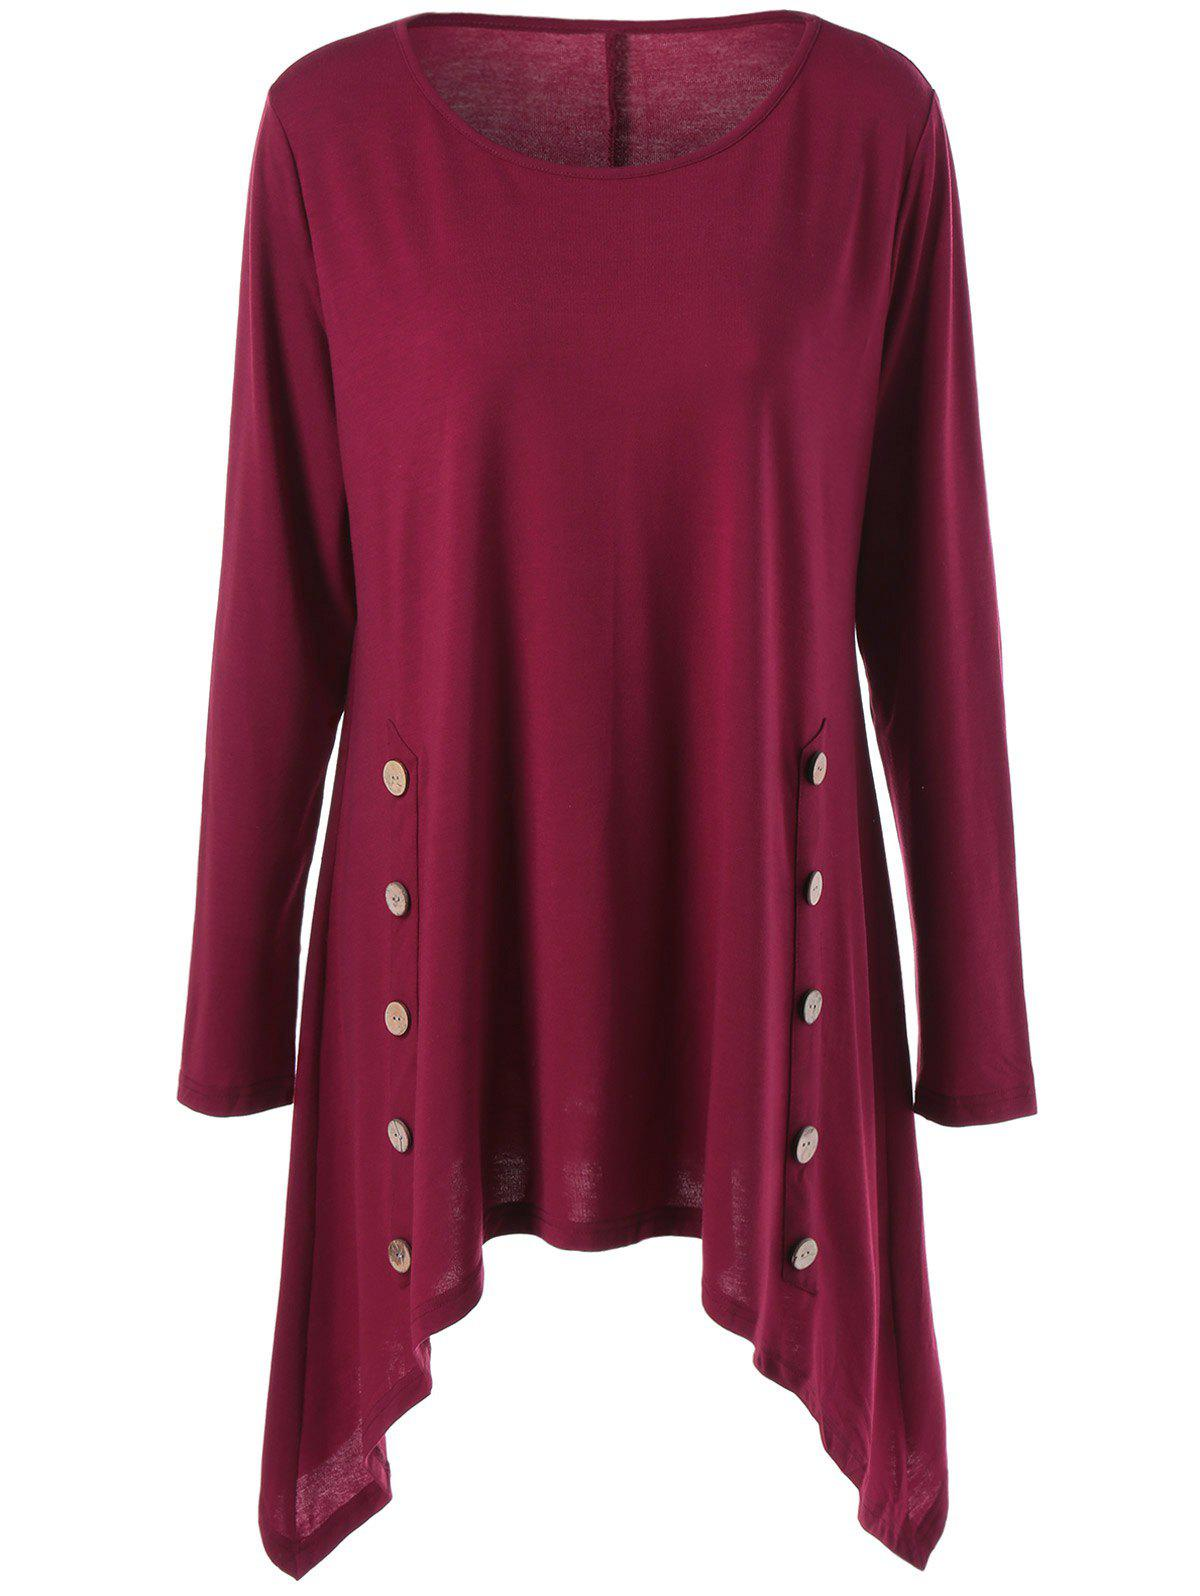 Long Sleeve Plus Size Double-Breasted Asymmetrical T-ShirtWOMEN<br><br>Size: 2XL; Color: WINE RED; Material: Polyester,Spandex; Shirt Length: Long; Sleeve Length: Full; Collar: Scoop Neck; Style: Casual; Season: Fall,Spring; Pattern Type: Solid; Weight: 0.380kg; Package Contents: 1 x T-Shirt;